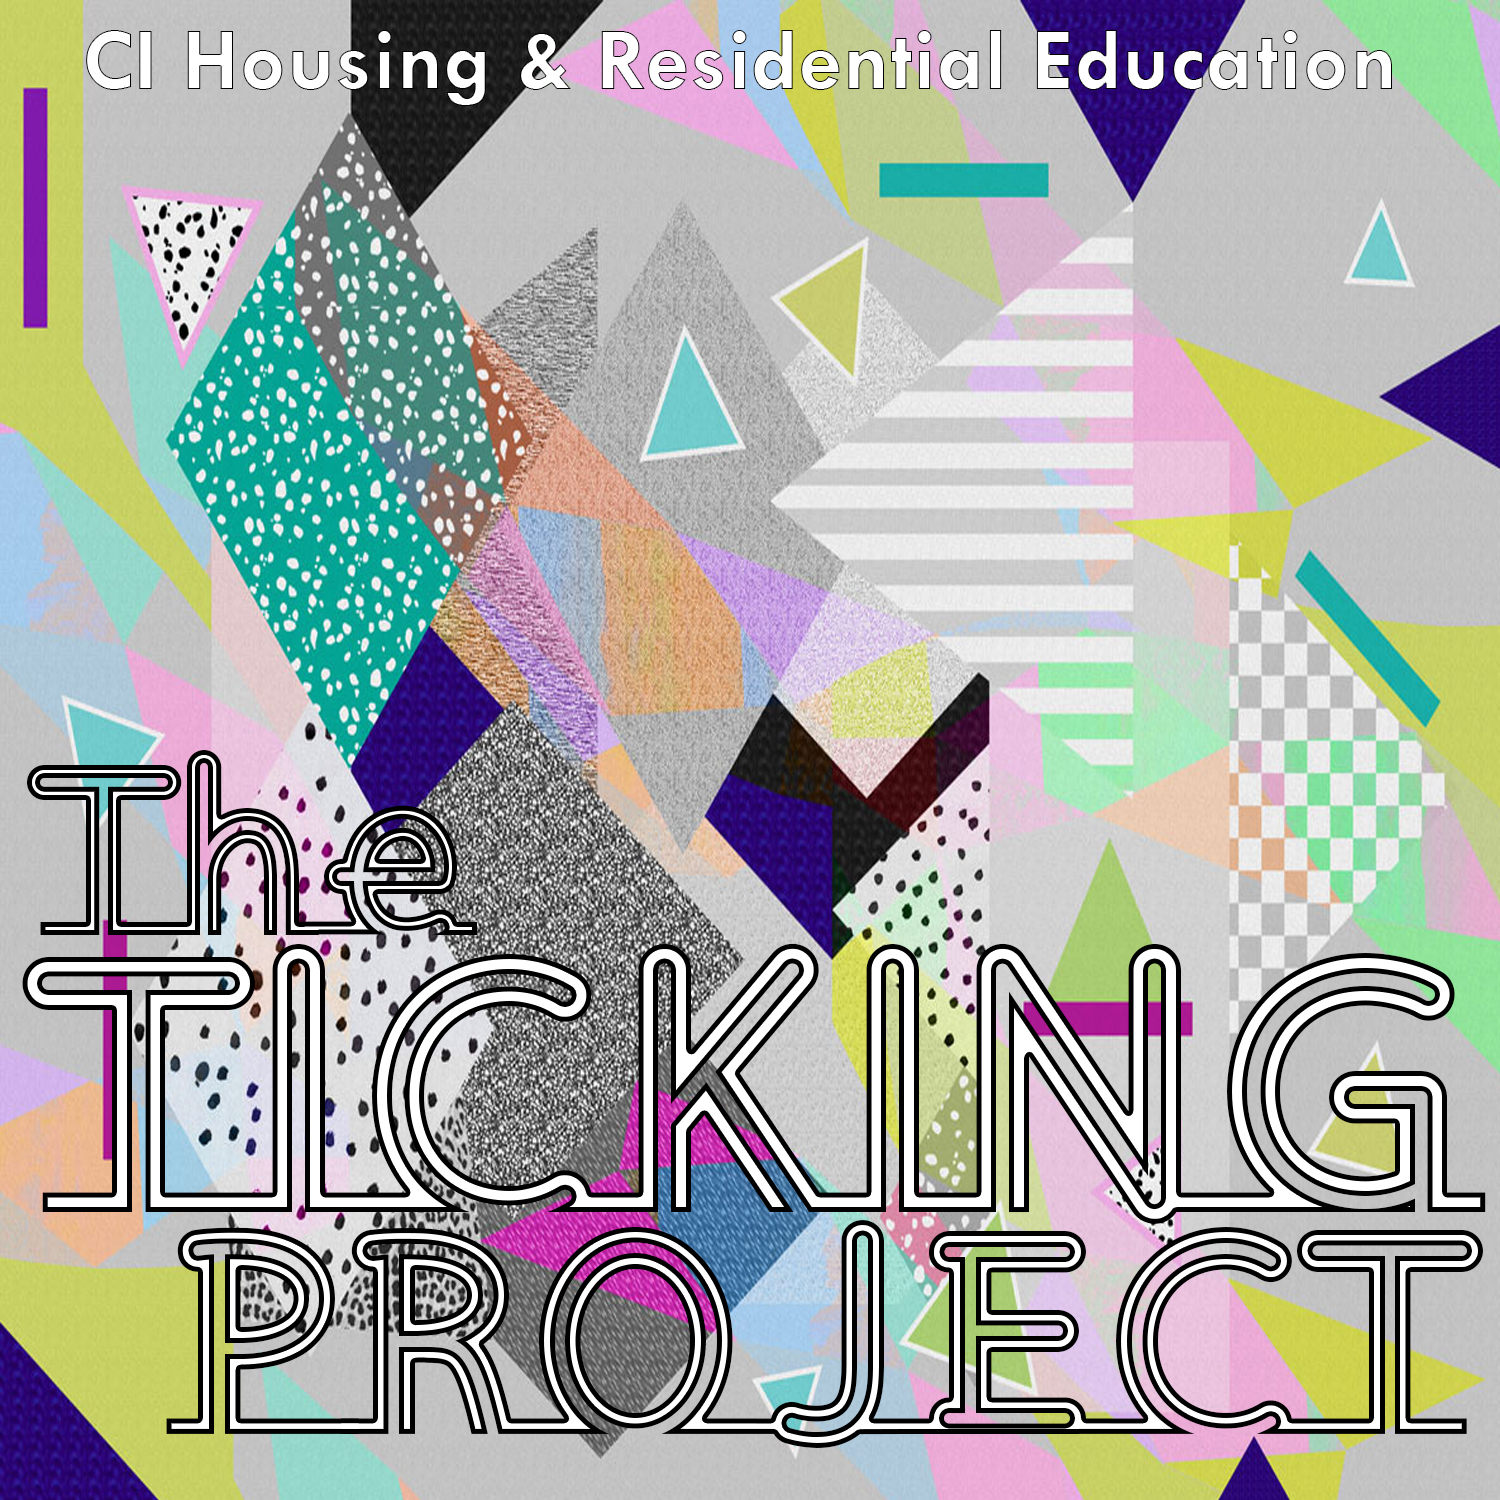 The Ticking Project